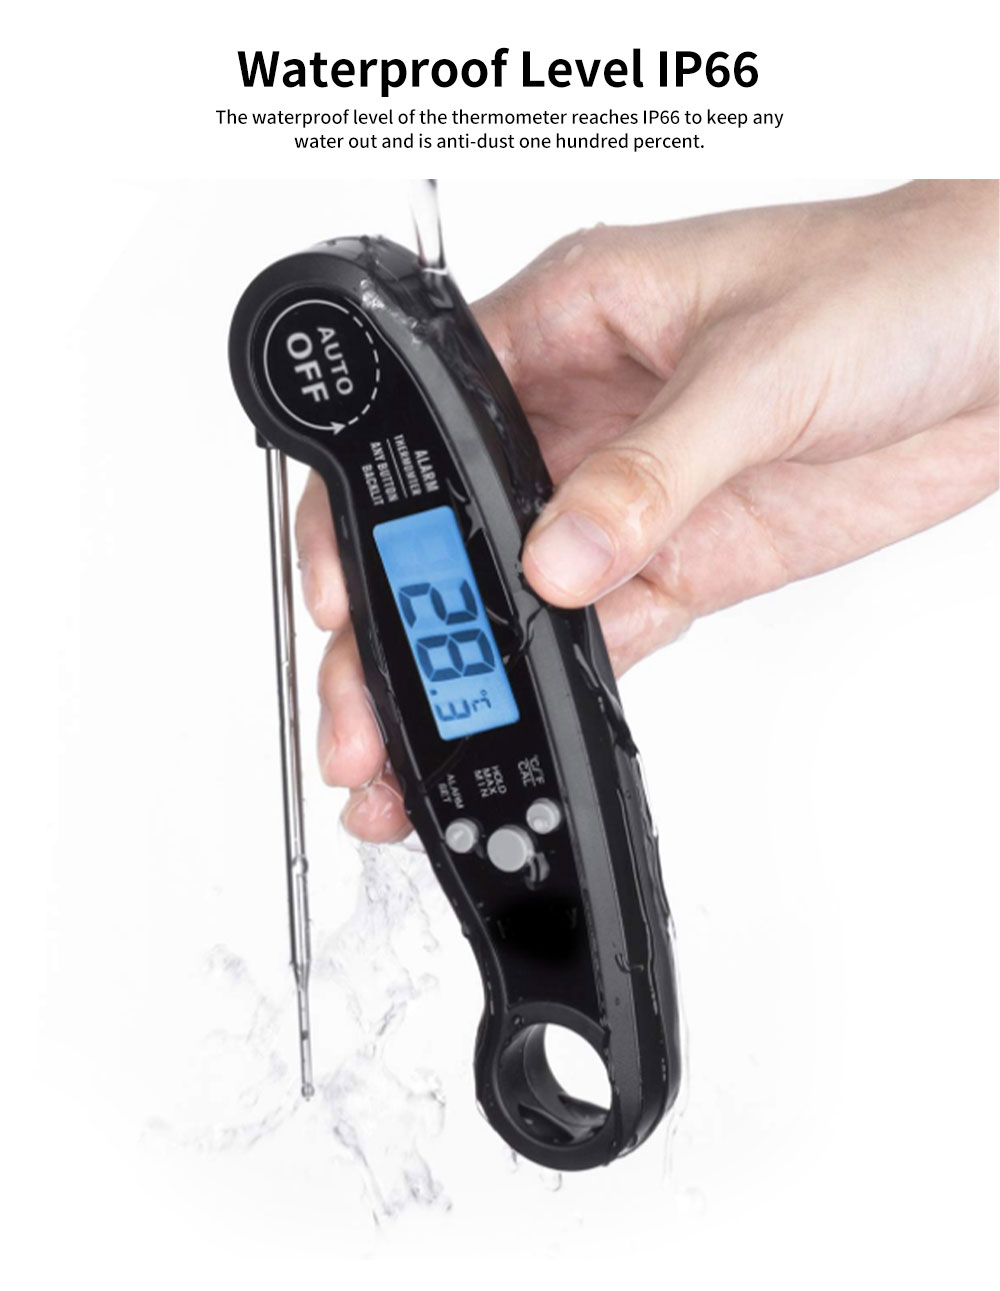 High Temperature Alarm Thermometer for Kitchen Baking, Temperature Measurement Foldable Alarm Thermometer for Milk Water Barbecue Temperature Test Waterproof 4